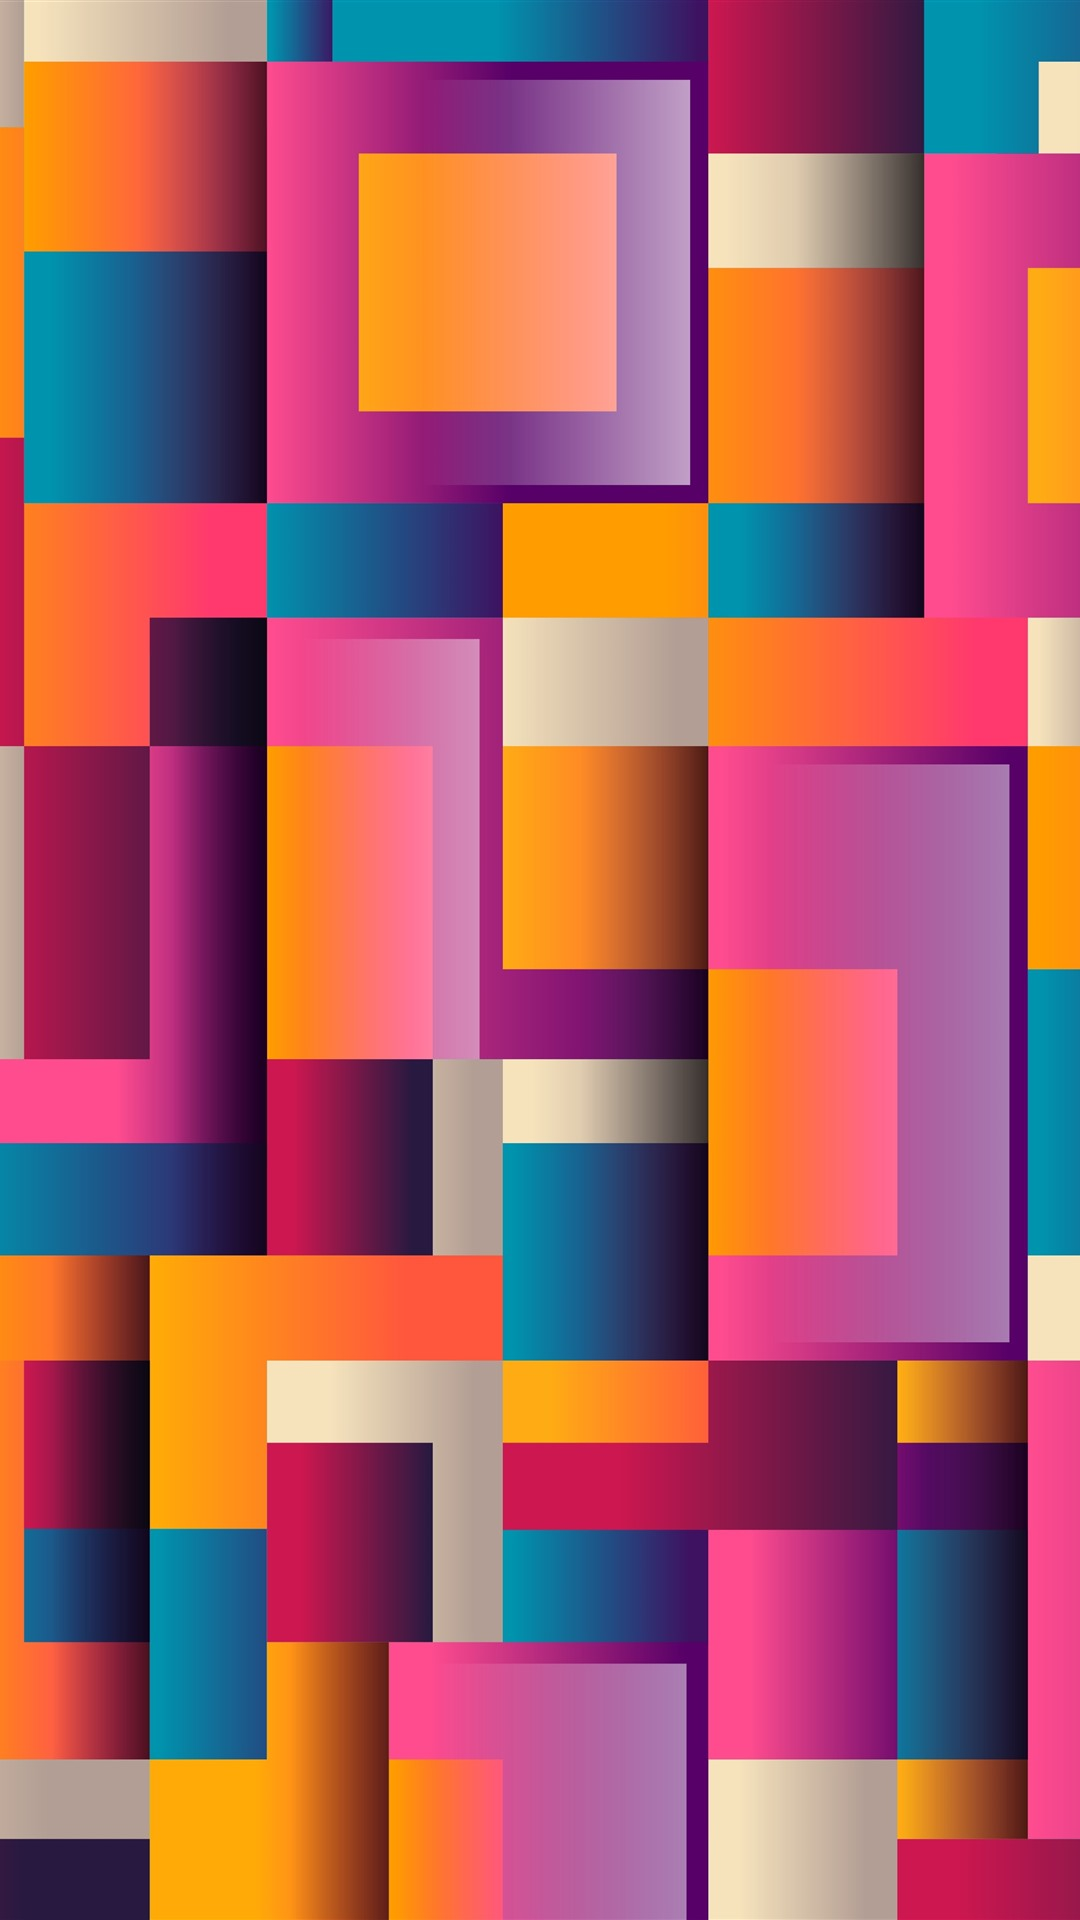 3d Abstract Rainbow Wallpaper Wallpaper Colorful Squares Geometric Abstract Background